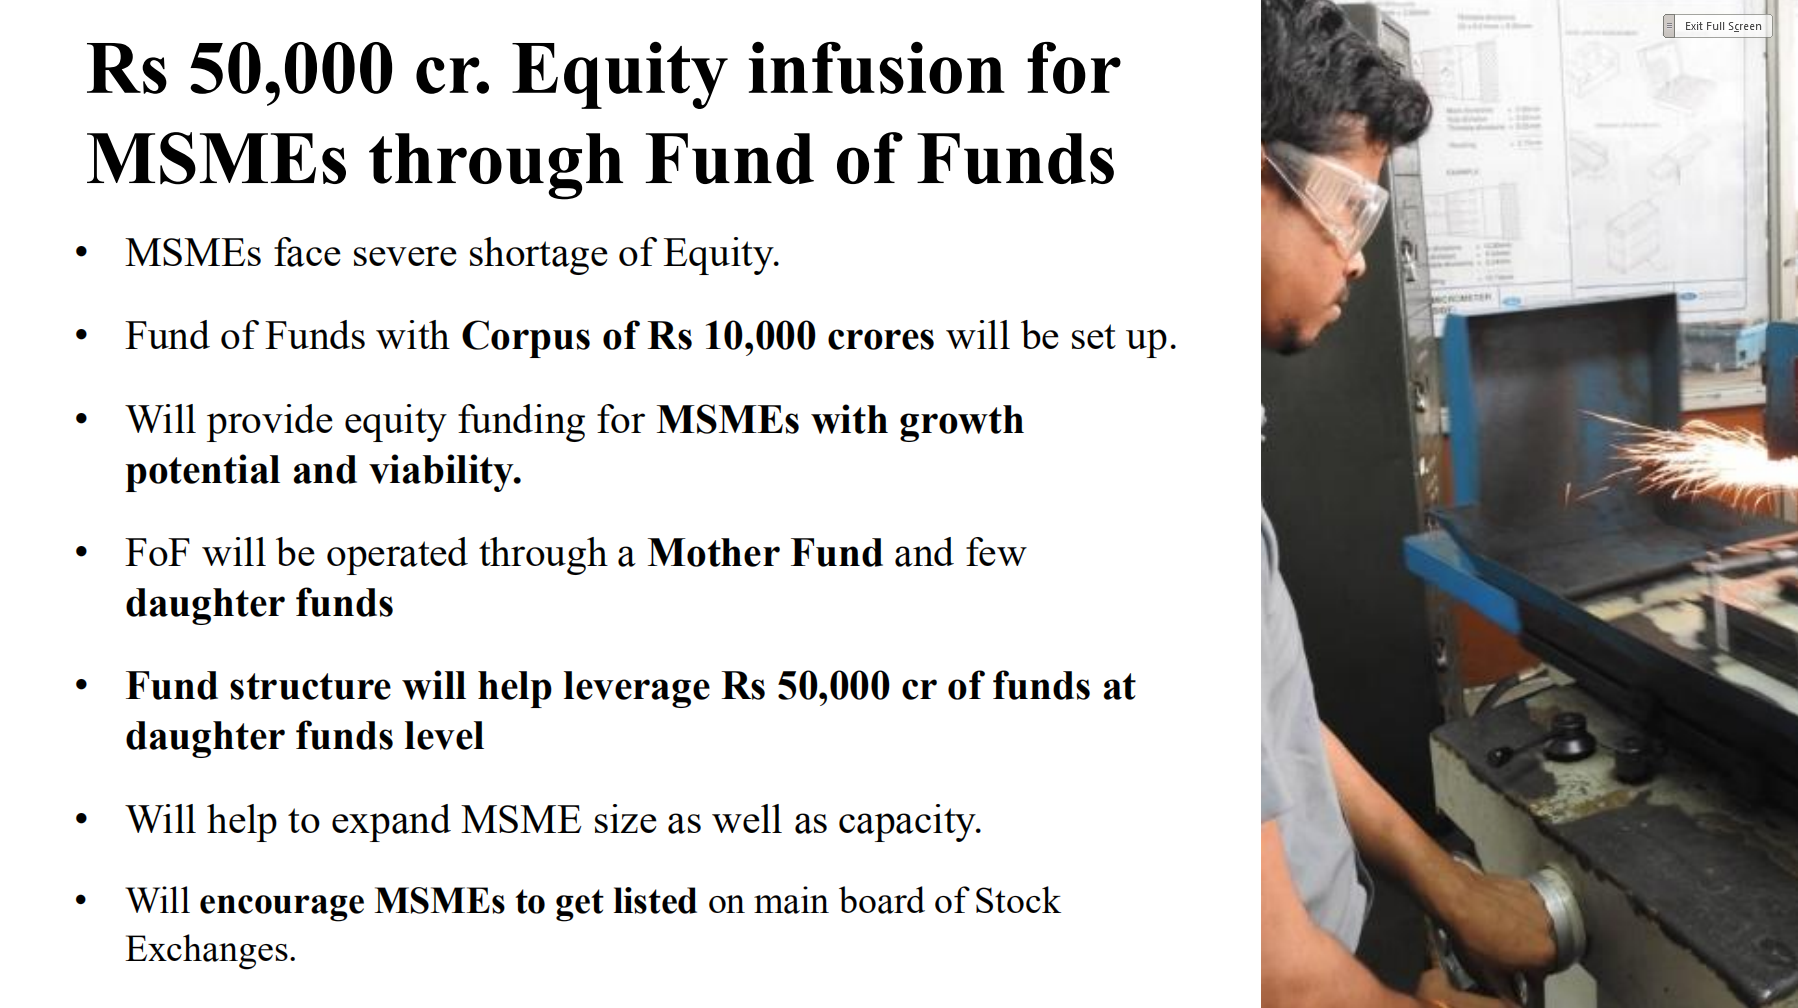 Equity for MSMEs